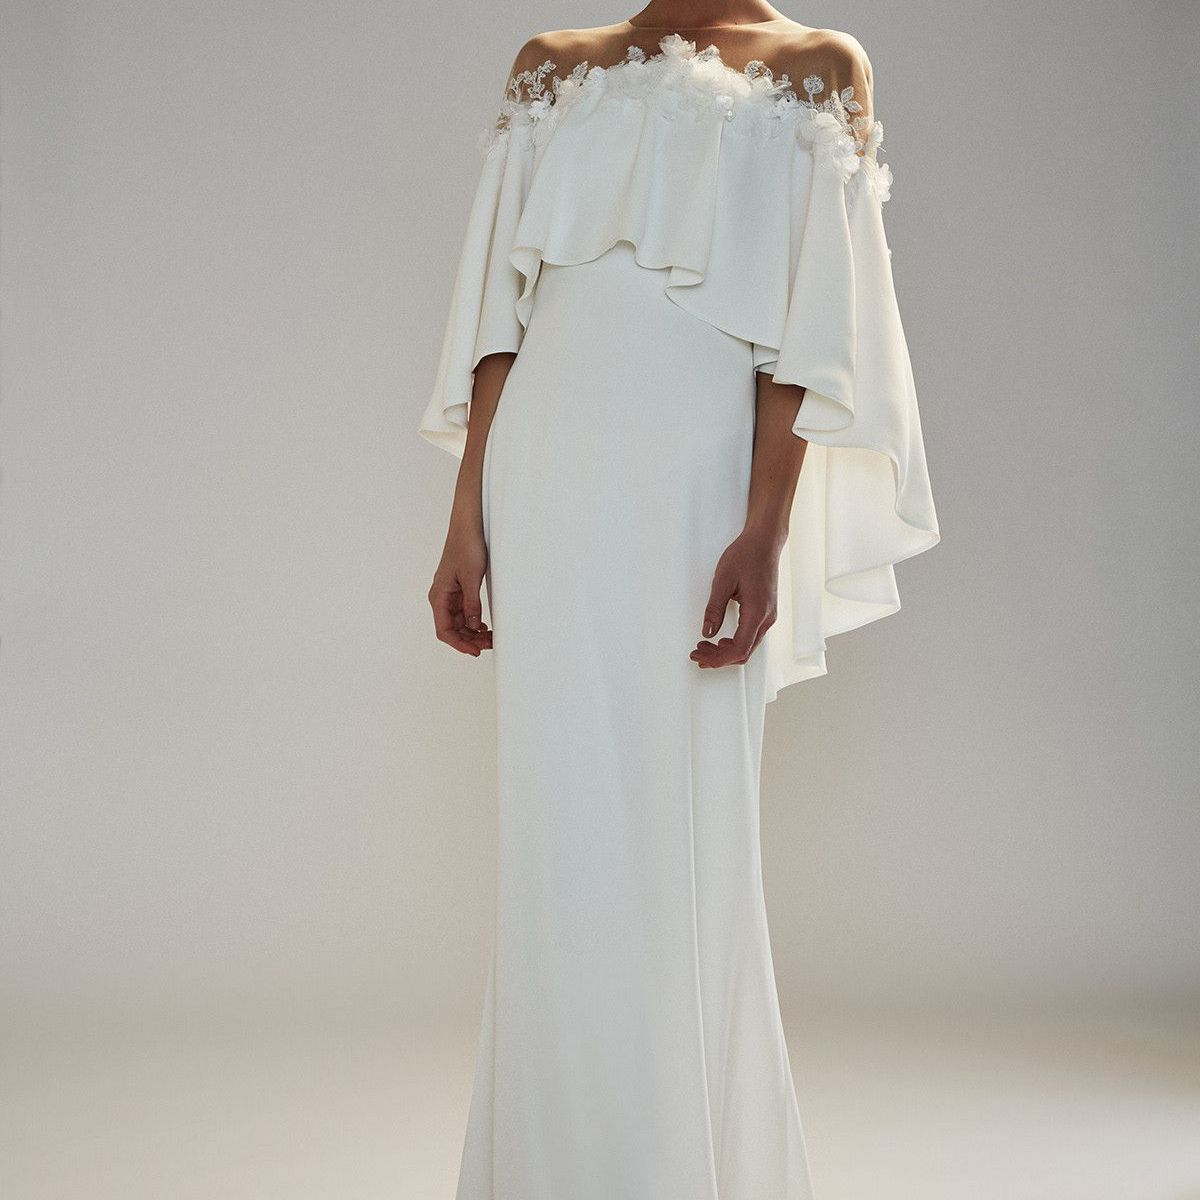 Model in off-the-shoulder crepe gown with cascading ruffle and floral applique